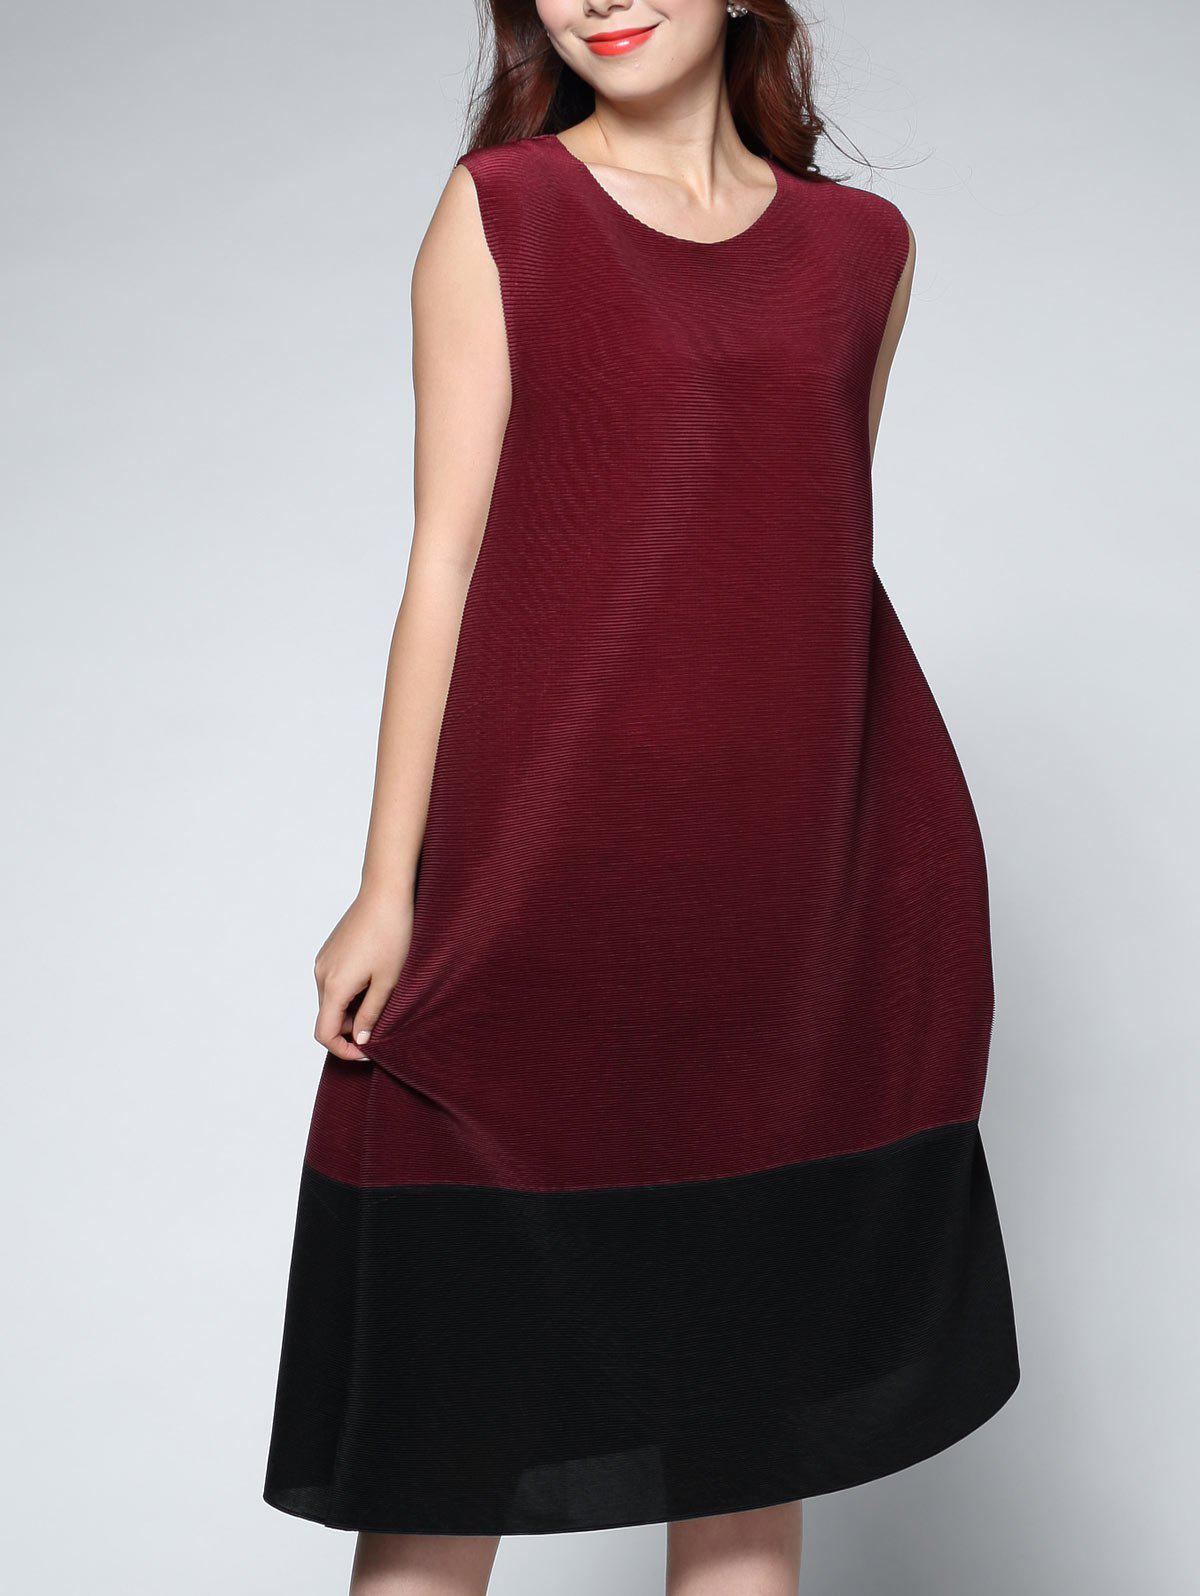 Sleeveless Contrast Color Midi Dress - CLARET ONE SIZE